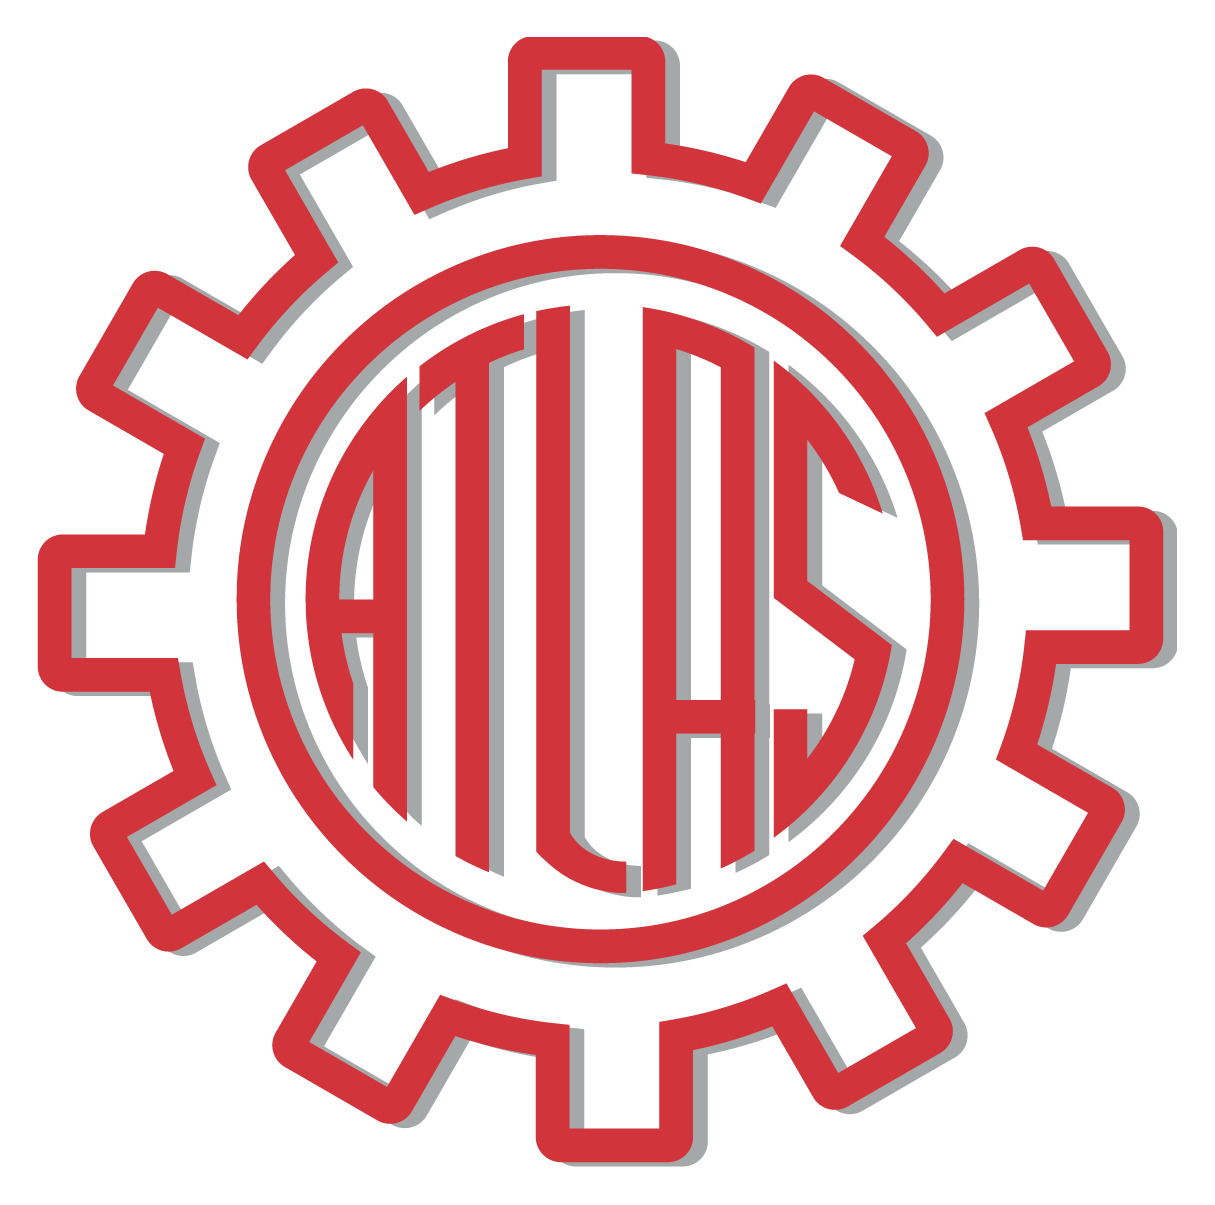 Atlas steel ltd download free clipart with a transparent.